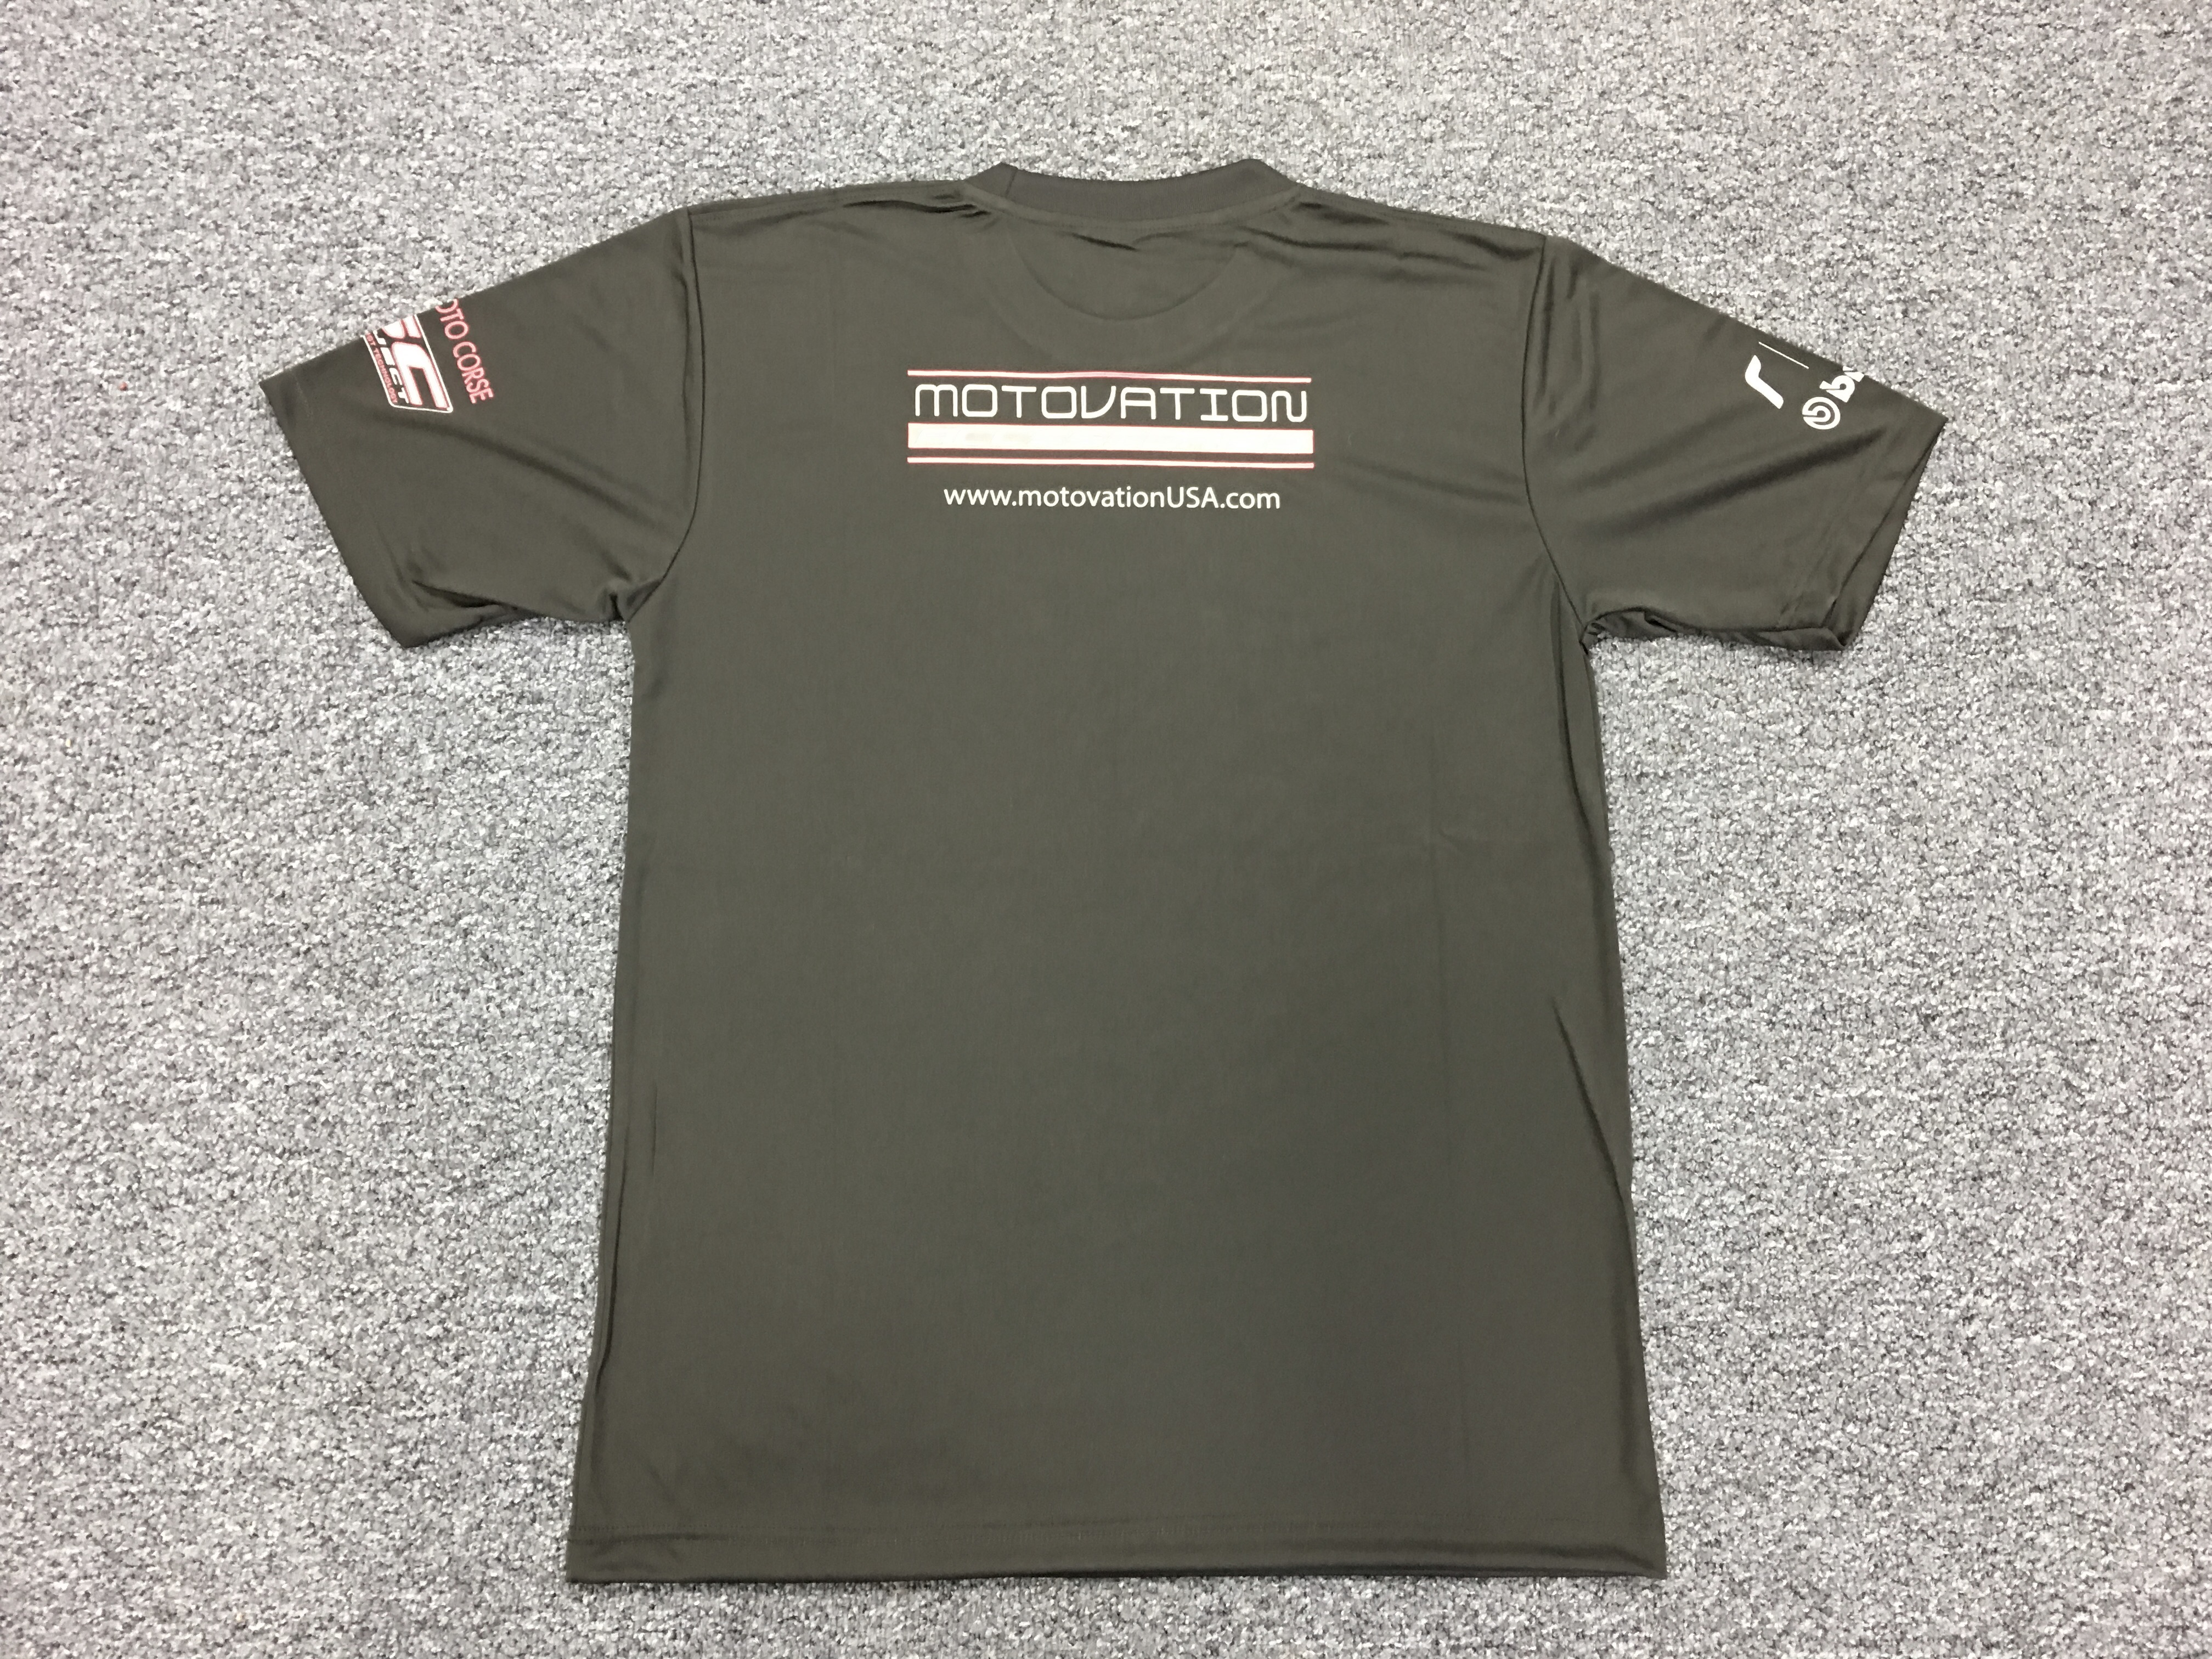 Motovation performance t shirt tee for Custom dri fit t shirts